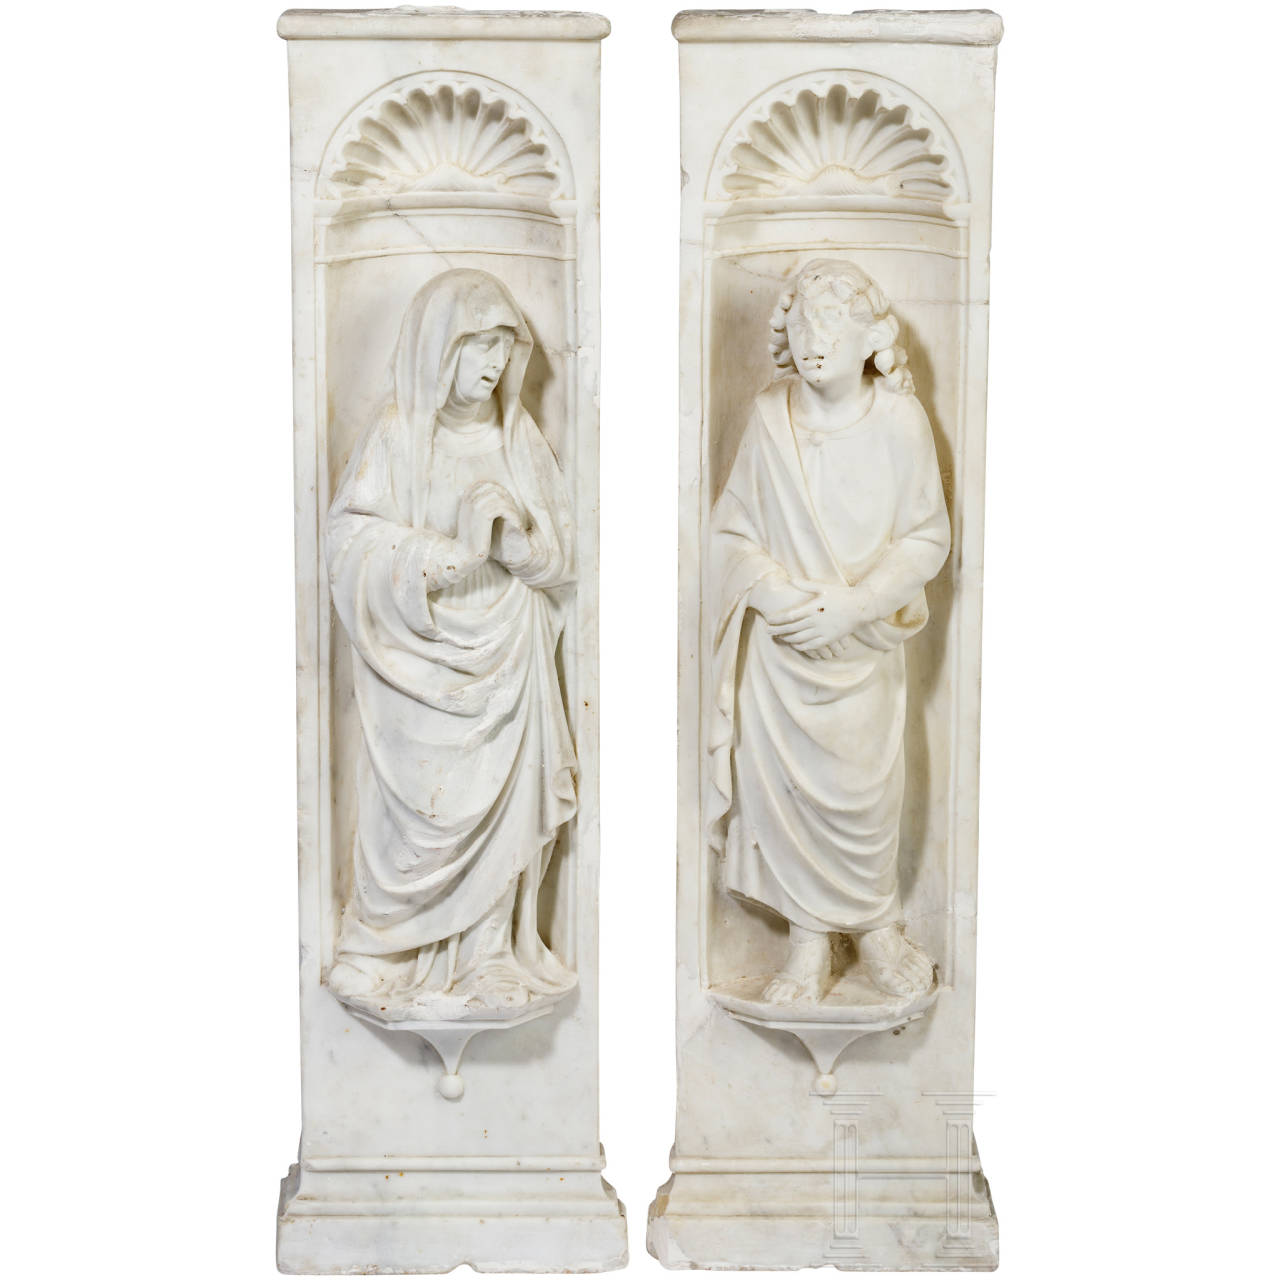 A rare pair of Italian Baroque depictions of saints, early 17th century